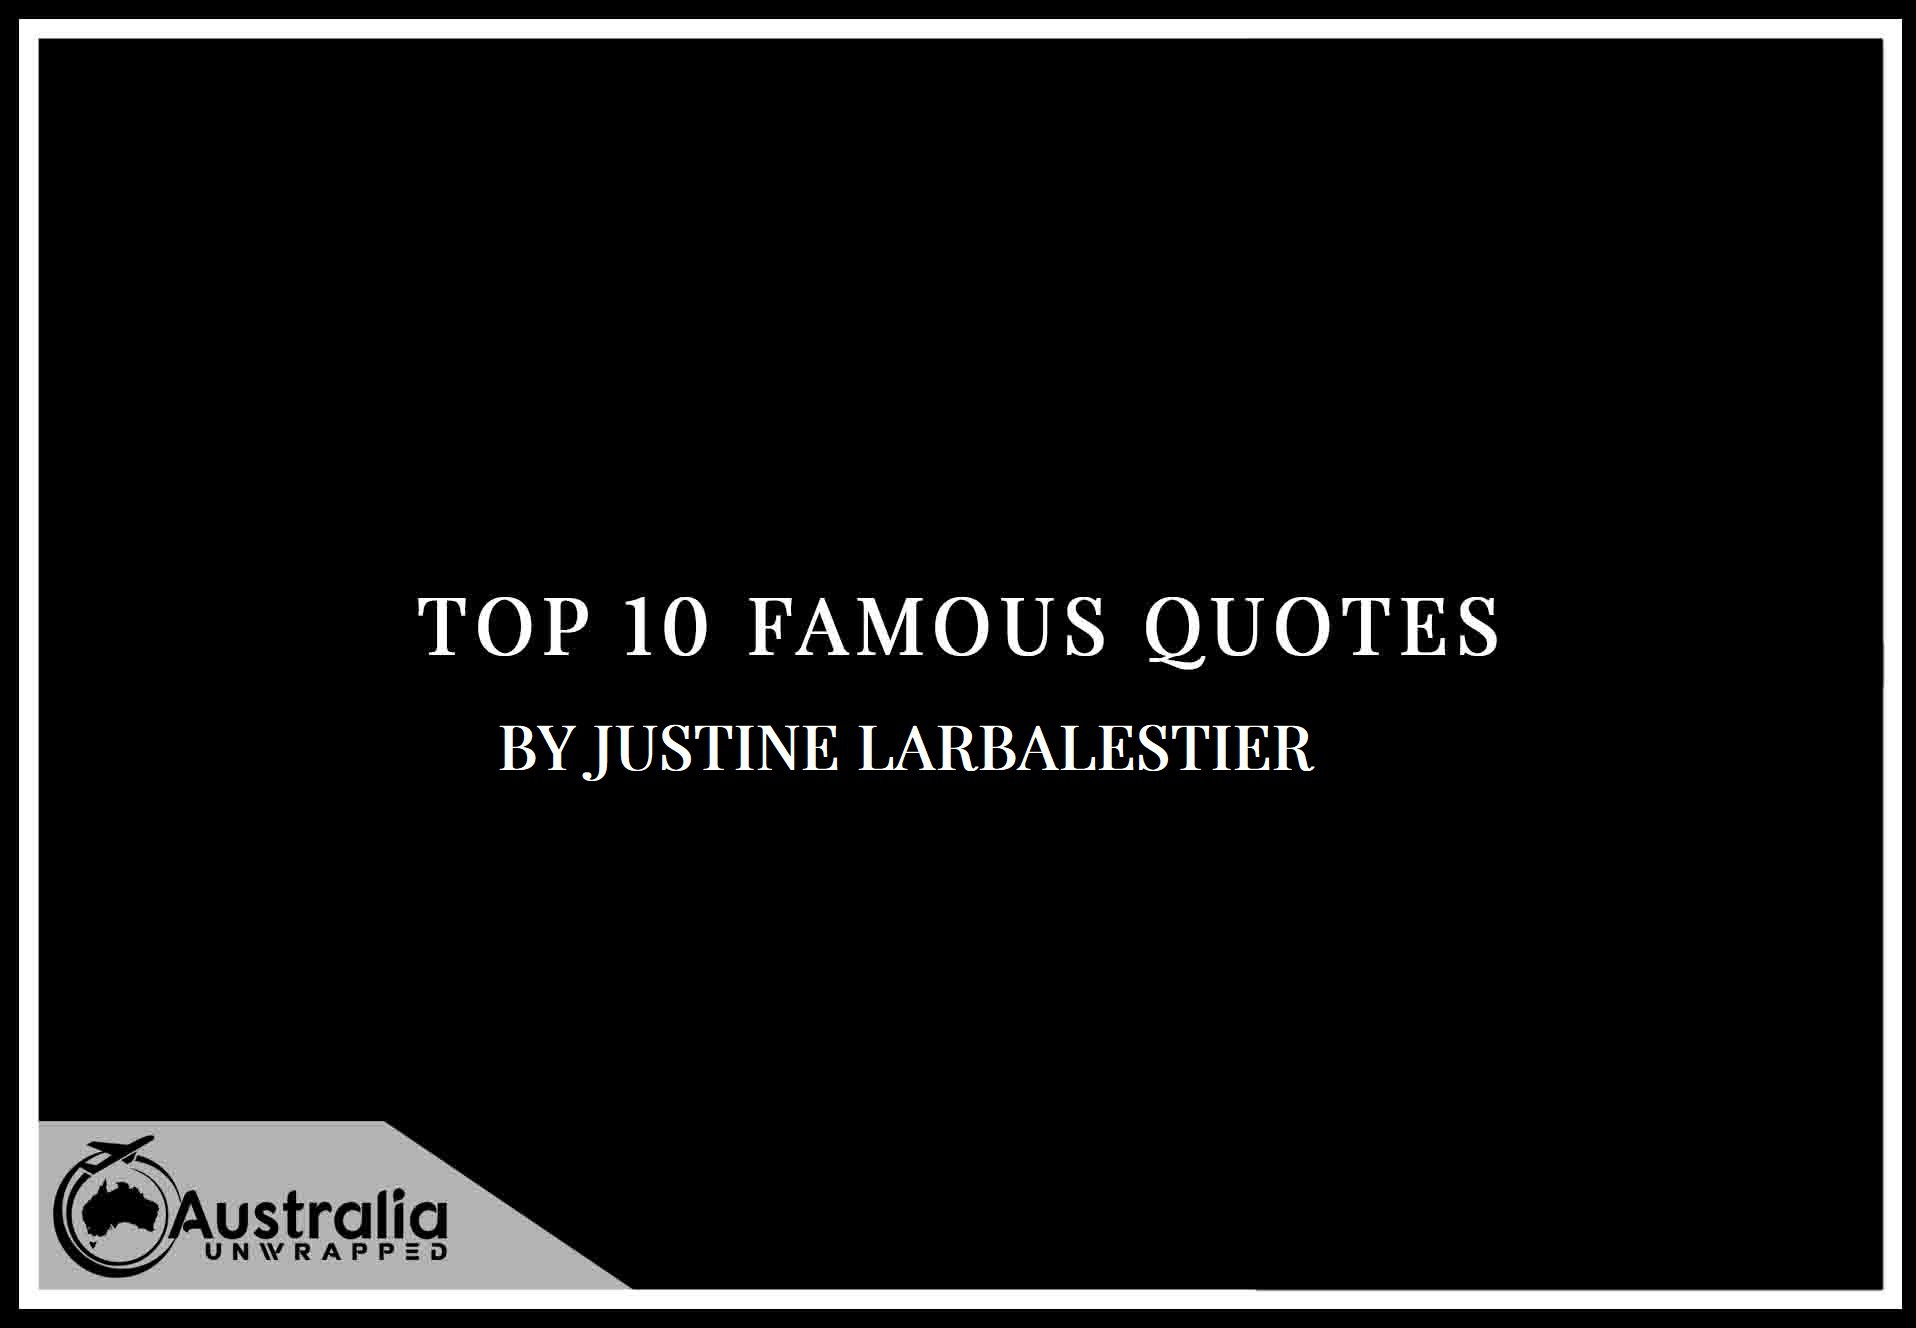 Top 10 Famous Quotes by Author Justine Larbalestier